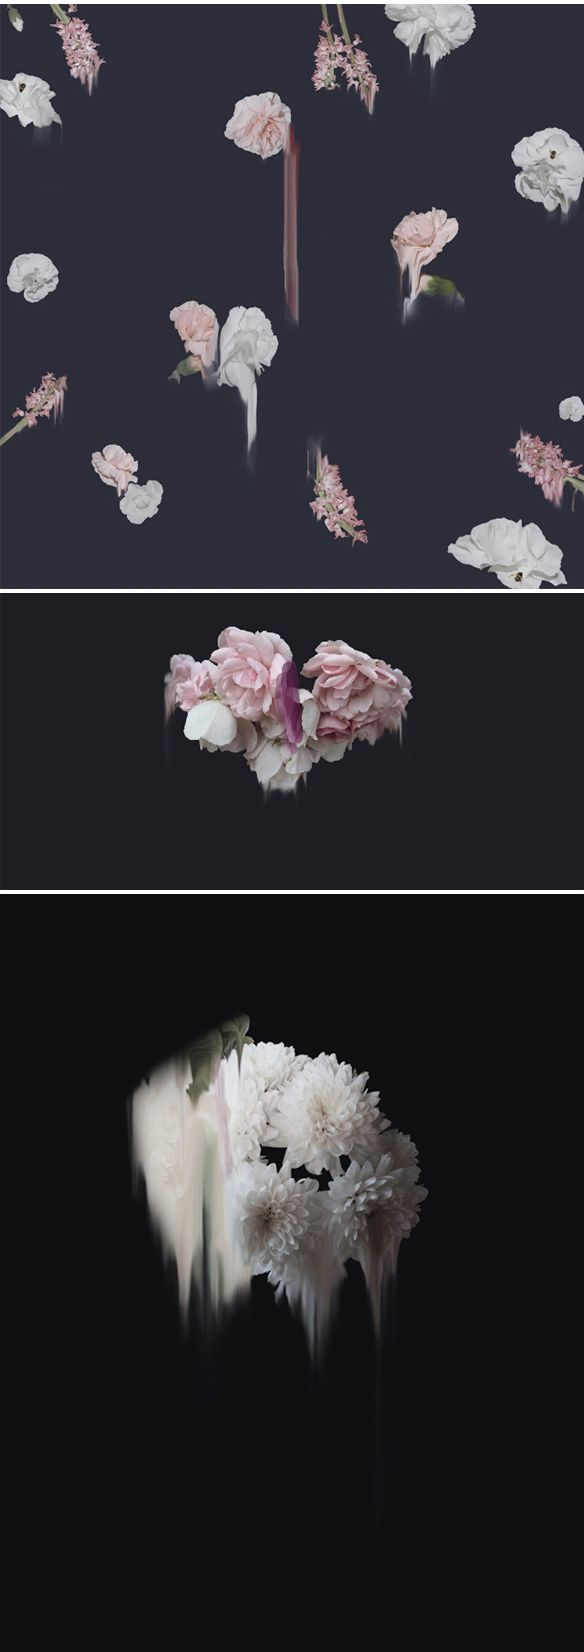 Simone Truong ~ explores flora and fauna… and states of transition that occur in natural phenomena. Her creative process includes traditional painting and photo manipulation. *printmaking* via The Jealous Curator | simone-truong.com